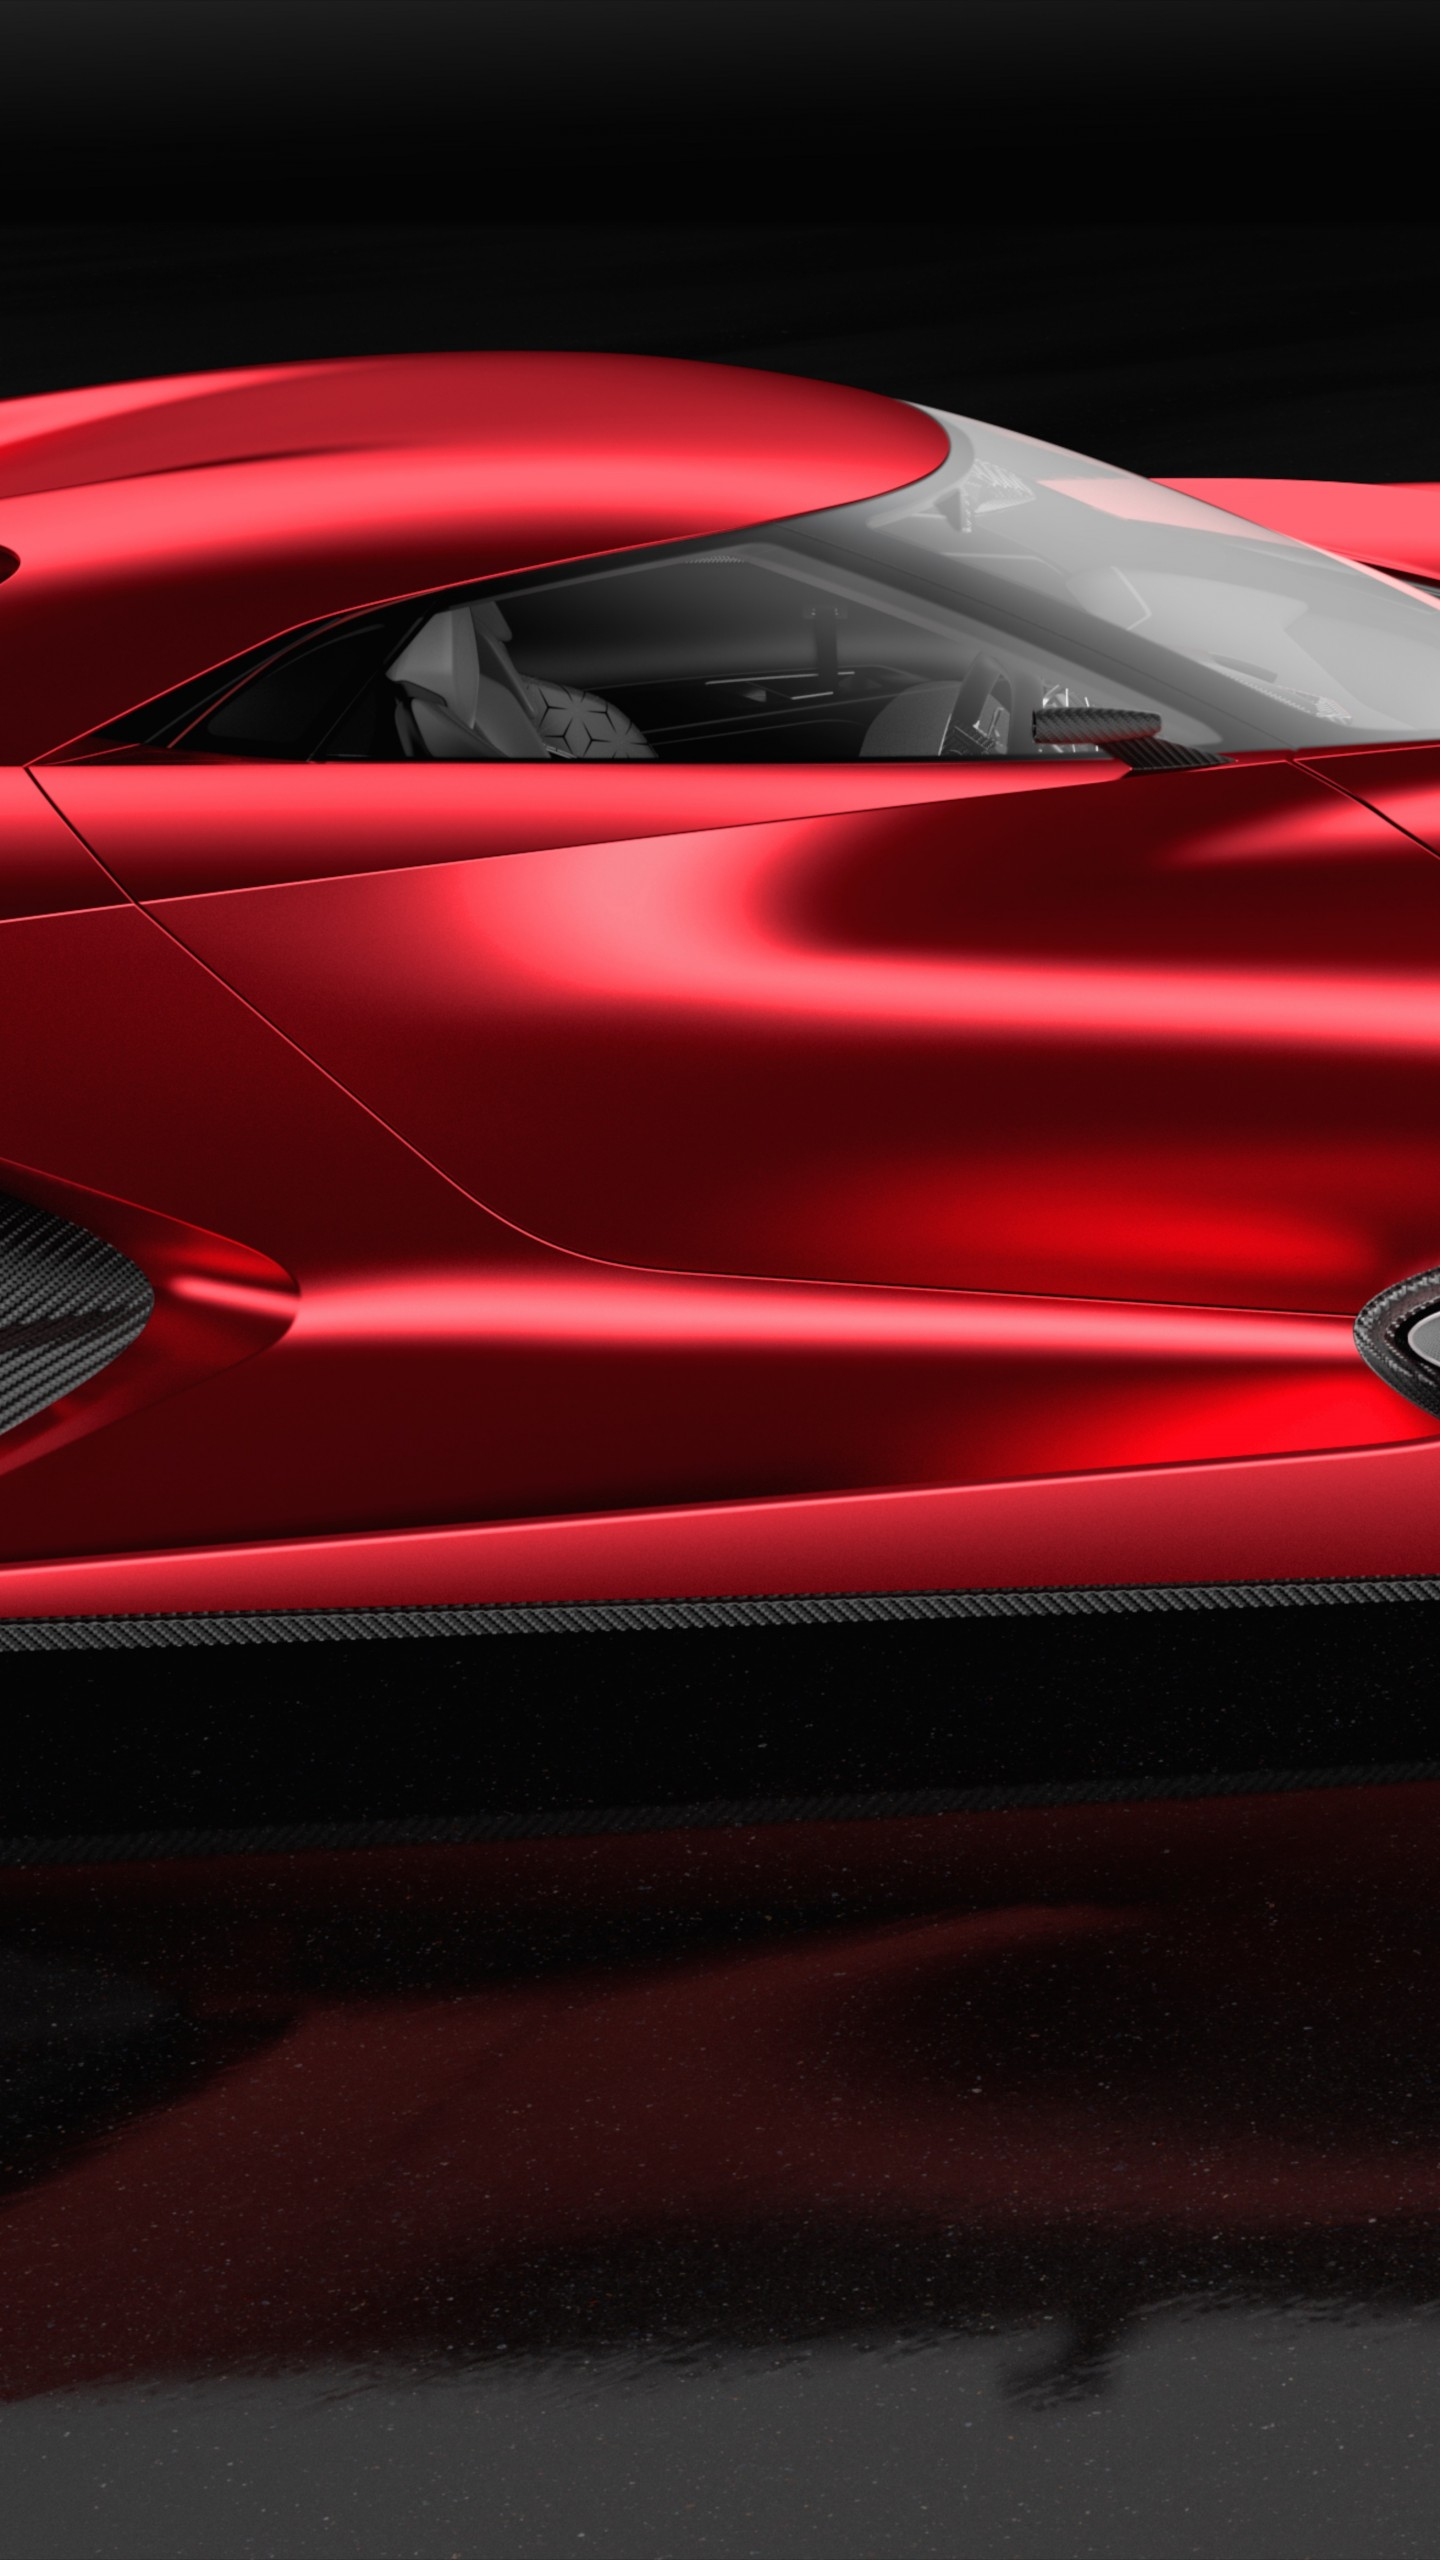 Nissan Luxury Brand >> Wallpaper Nissan 2020 Vision Gran Turismo, red, concept ...